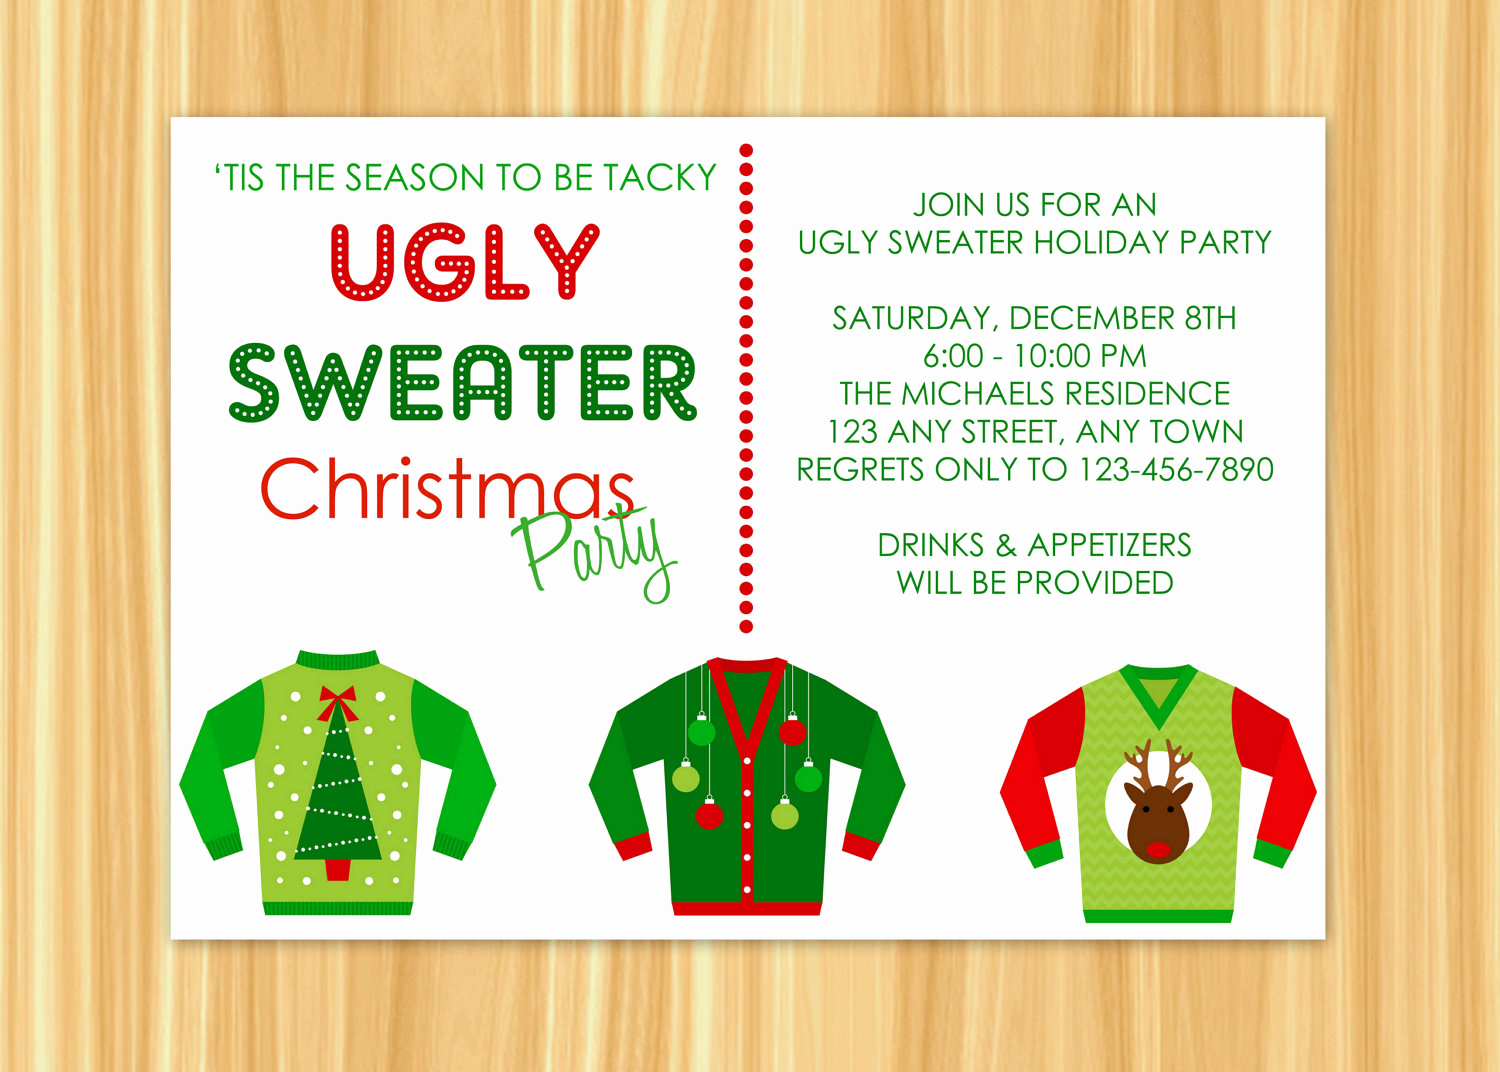 Ugly Sweater Party Invitation Wording Lovely Ugly Sweater Invitation Ugly Sweater Holiday Party